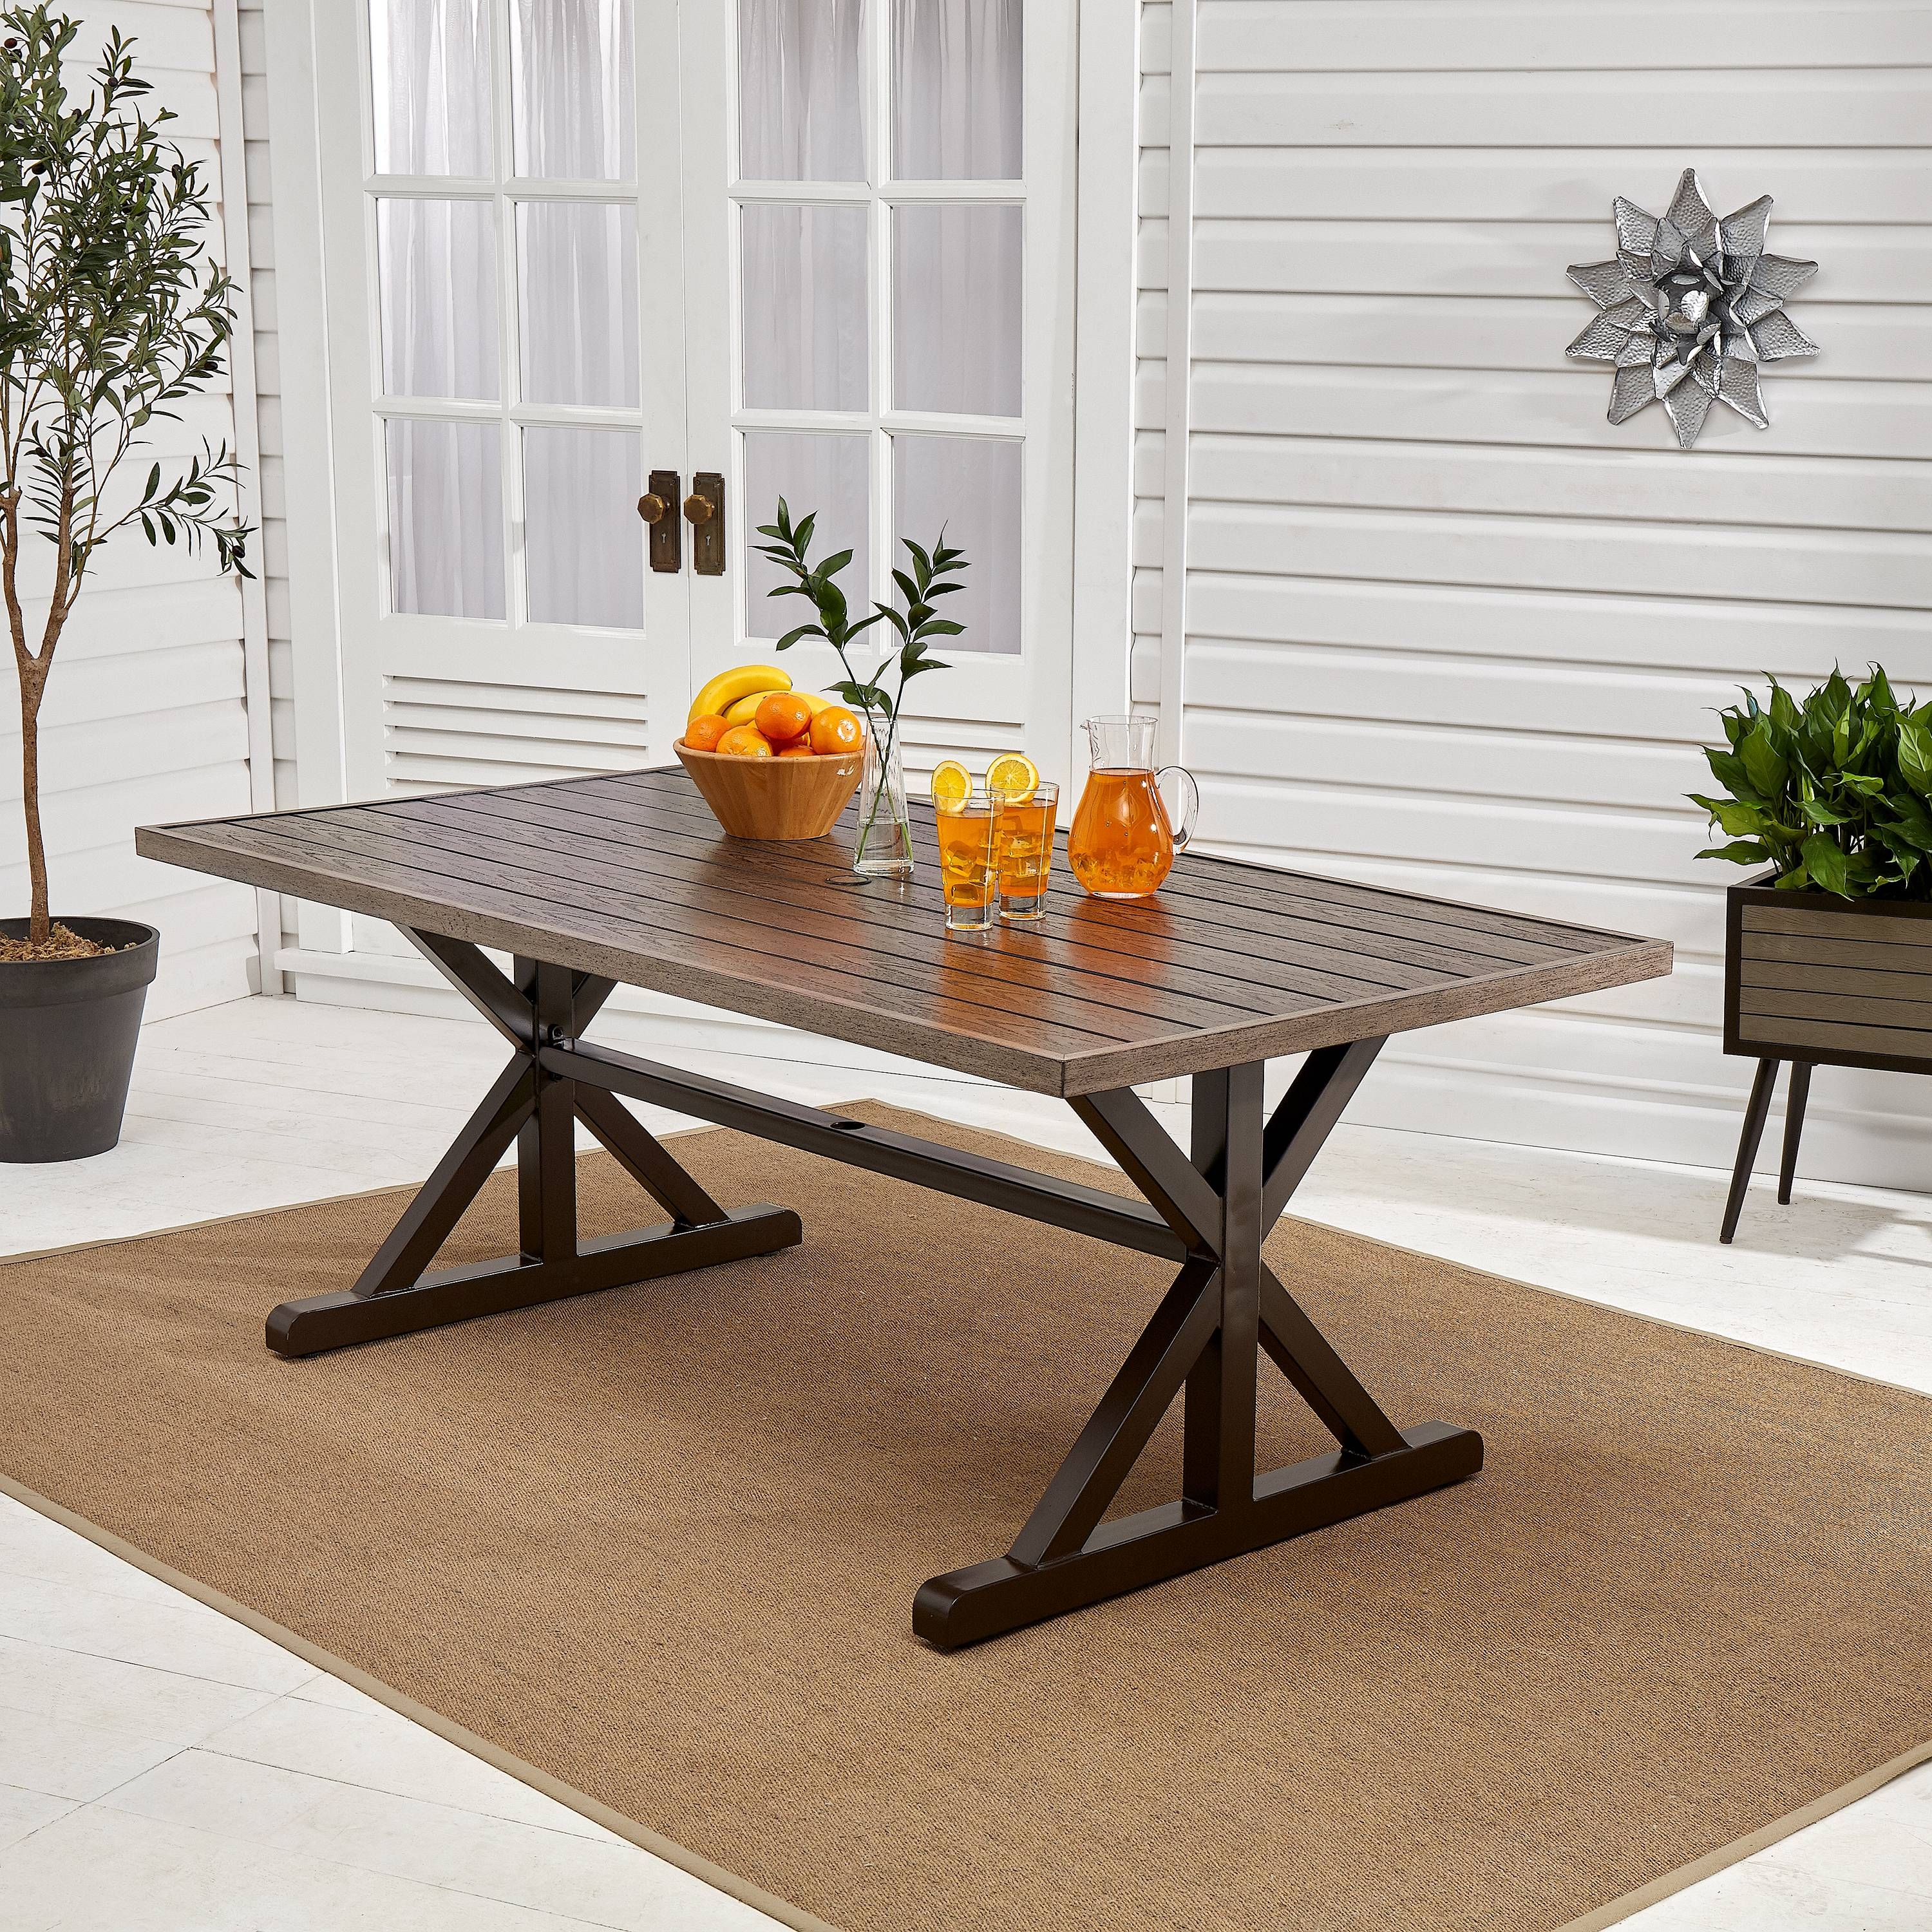 better homes gardens axel farmhouse patio dining table with trestle base